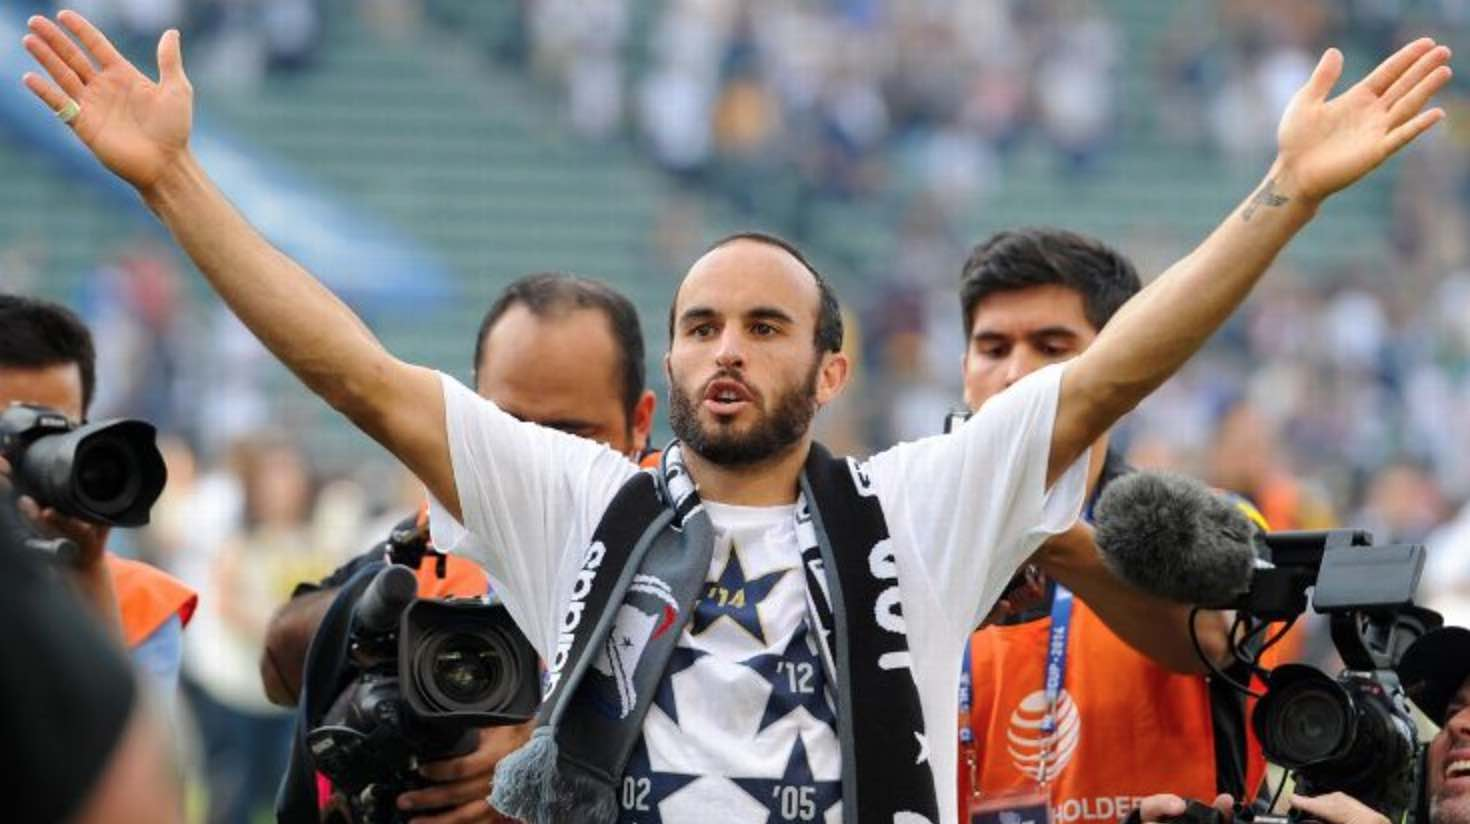 California native and MLS legend Landon Donovan will coach MLS Homegrown Team